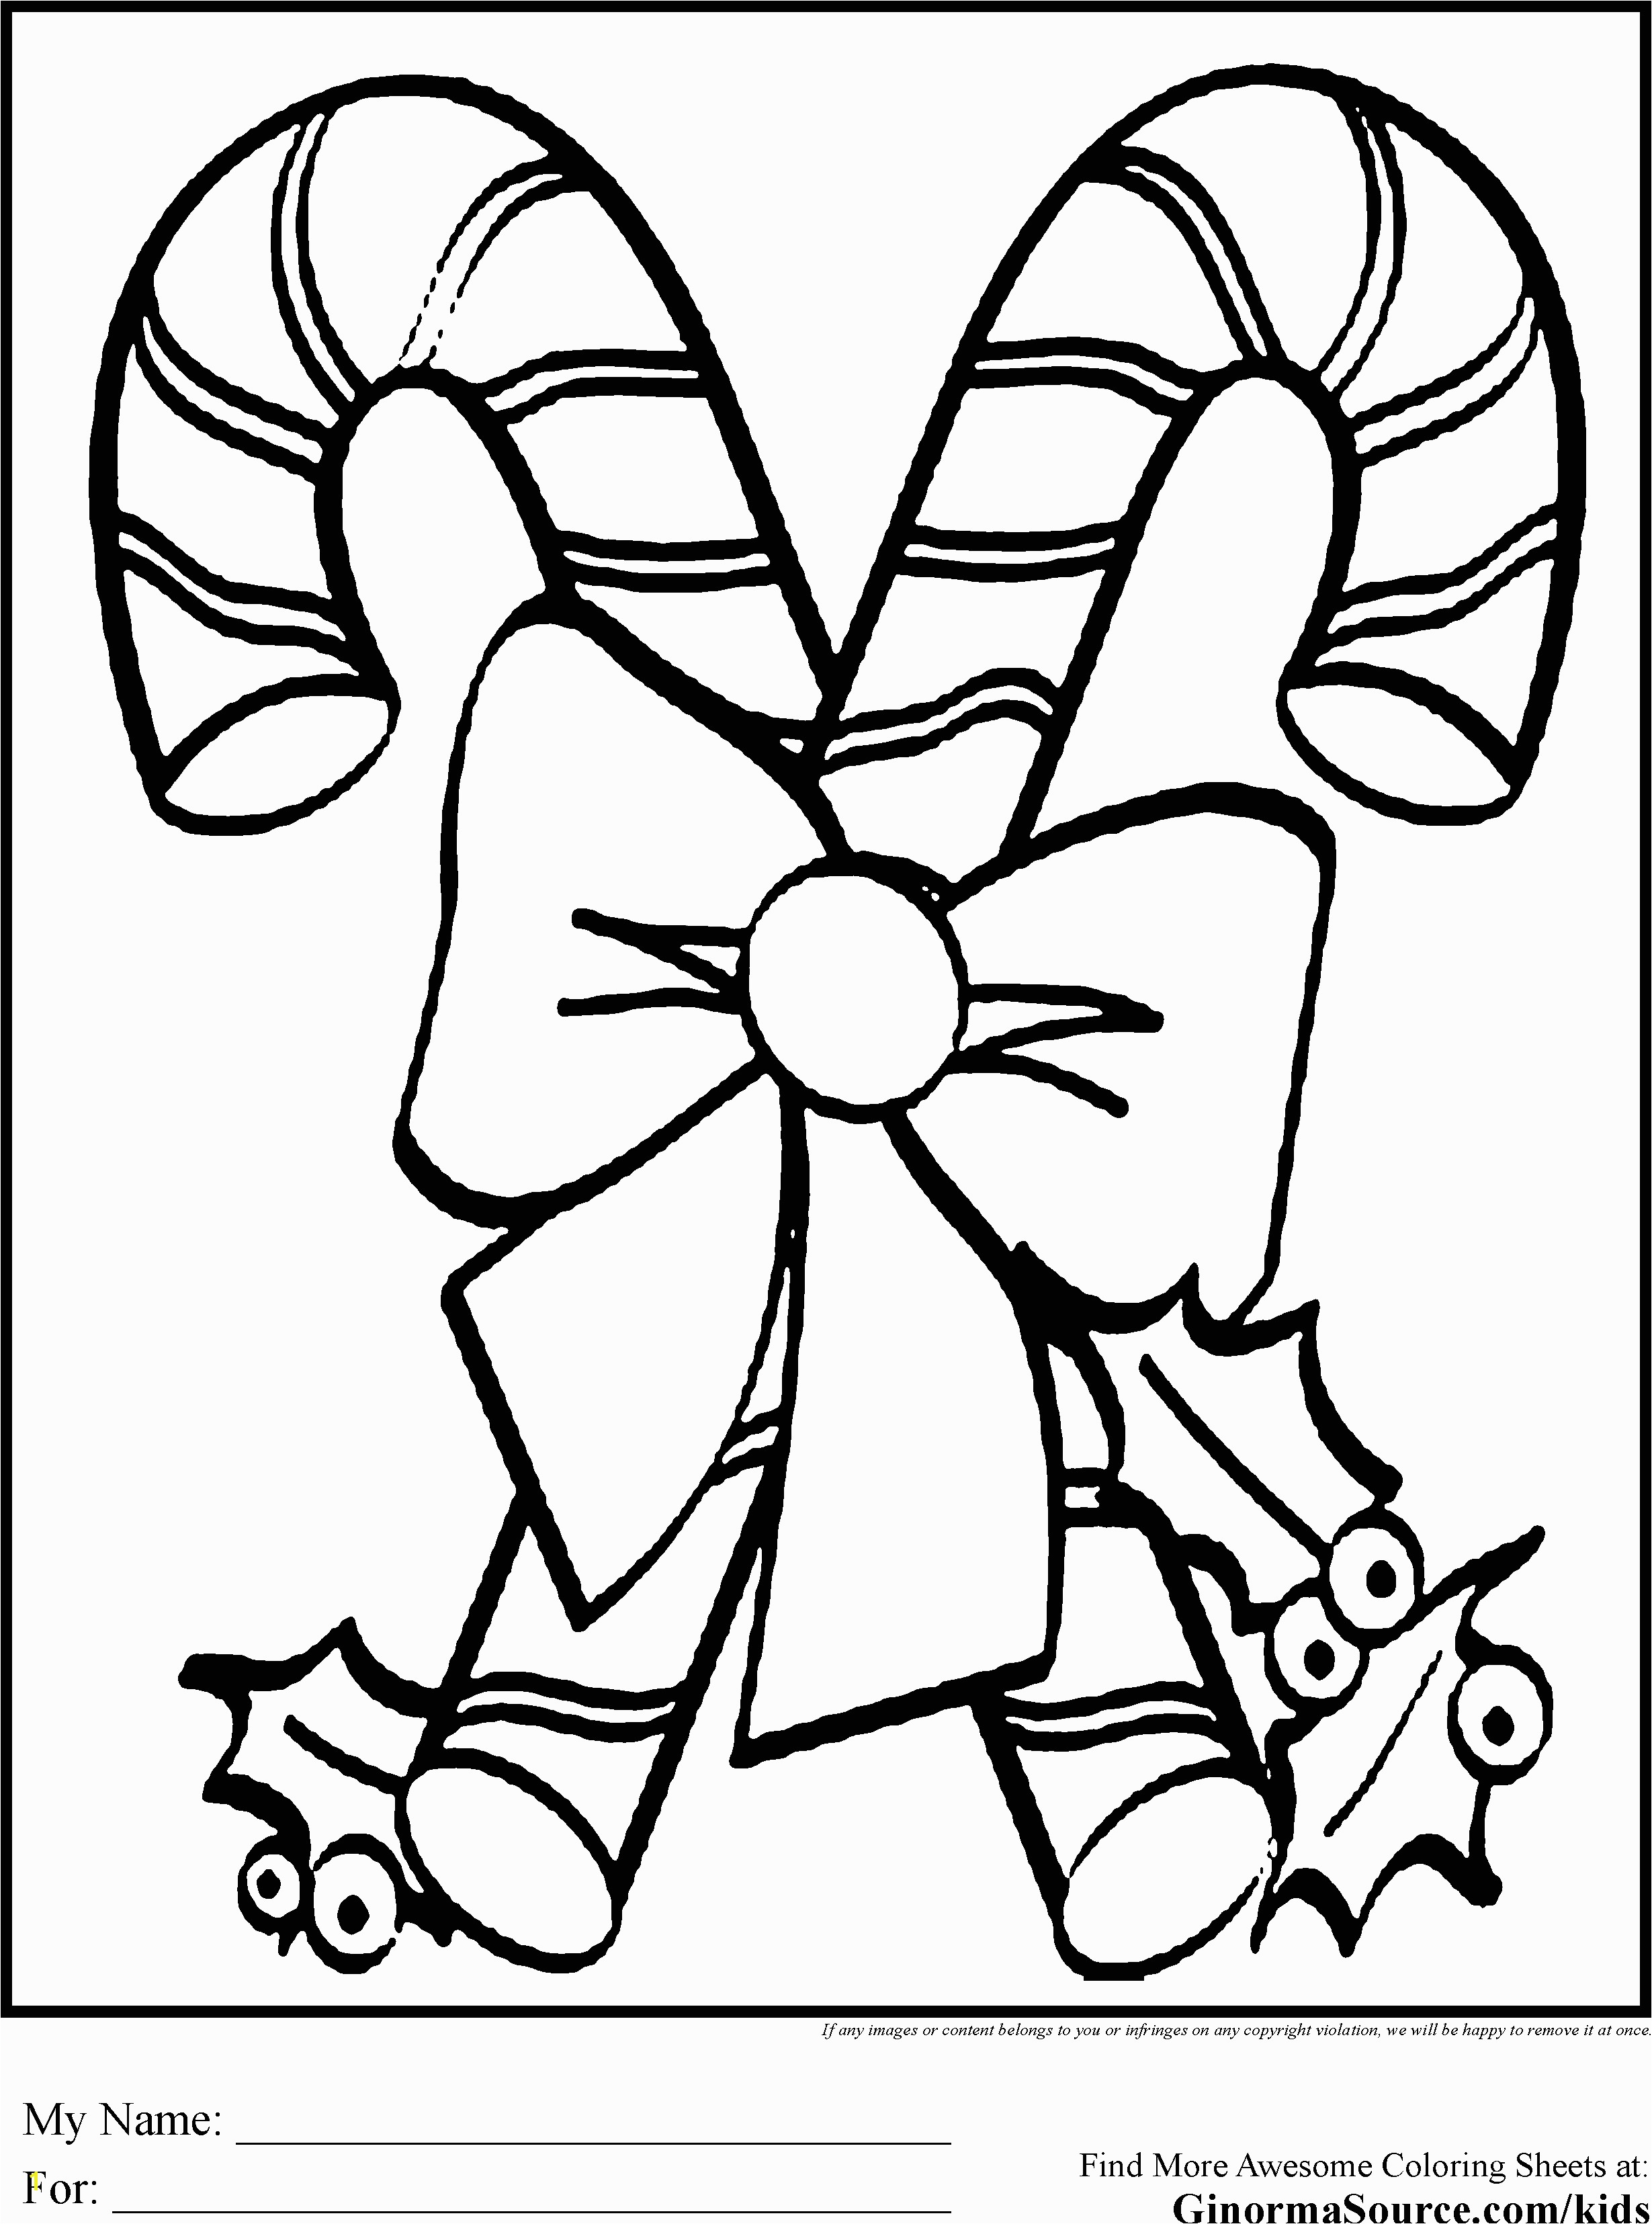 Big Candy Cane Coloring Pages Unique Candy Cane Coloring Sheet Gallery